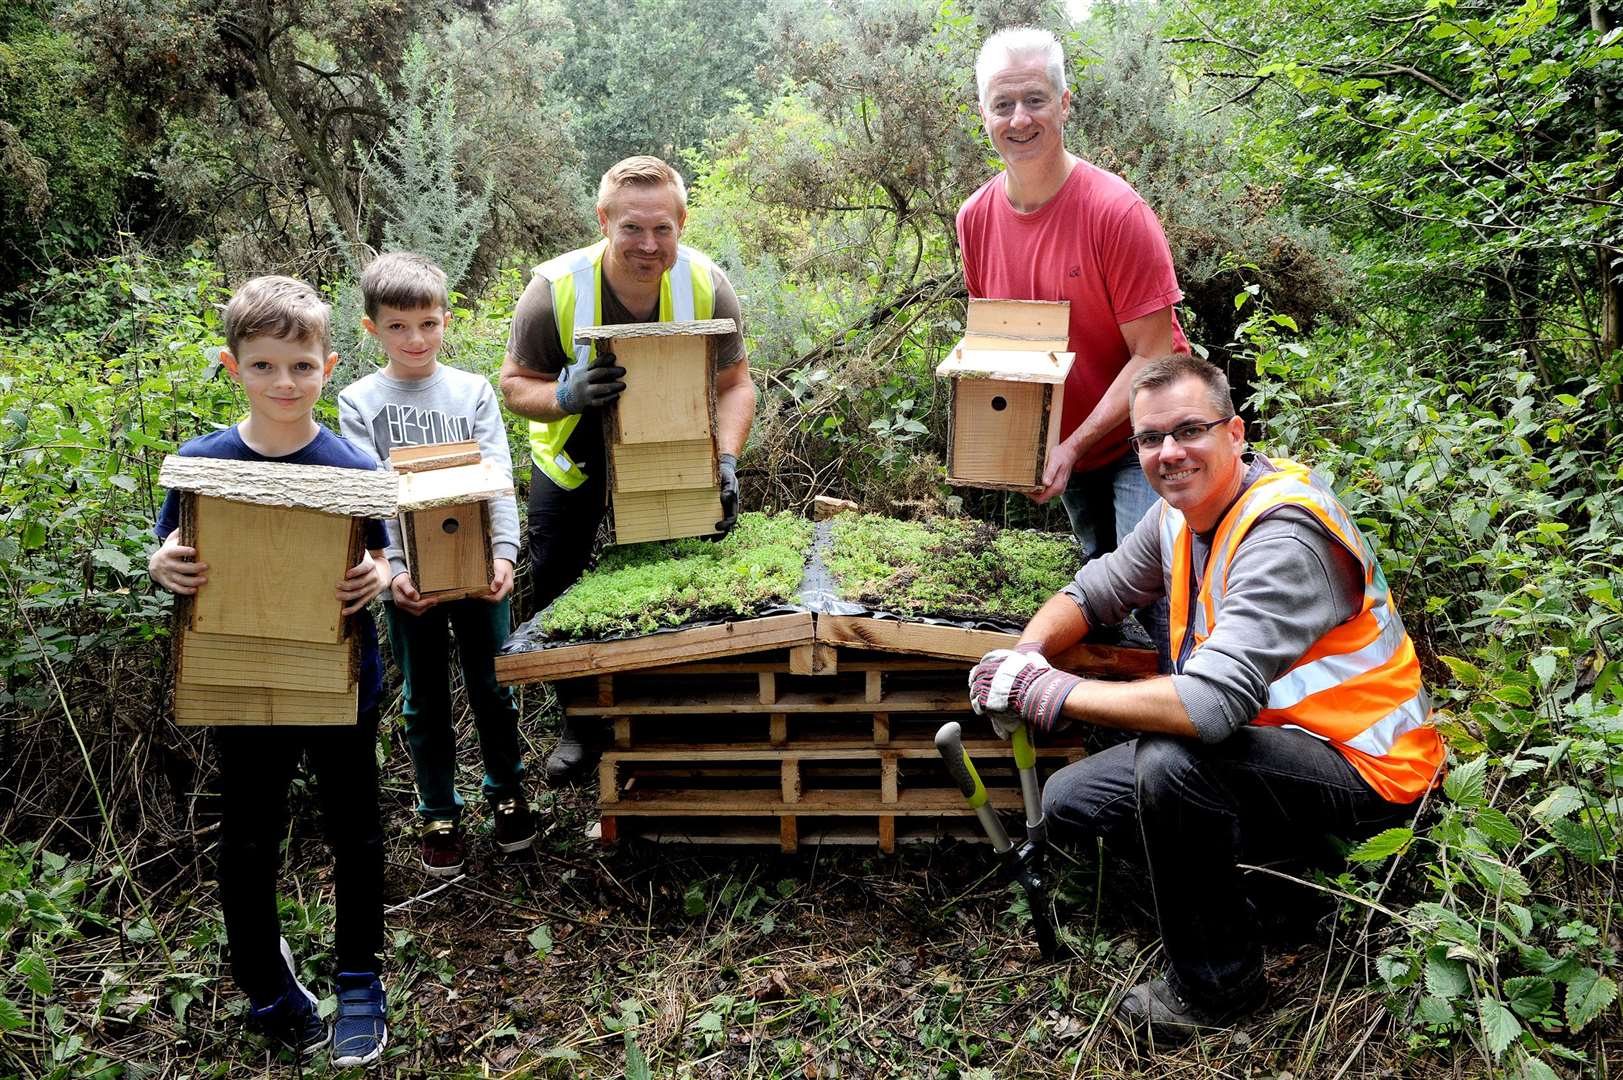 Cllr Paul Hopfensperger with Paul Hebditch, Project Manager of Greener Growth, and Sam Hardy, Director of Greener Growth along with a couple of local children. PICTURE: Mecha Morton.